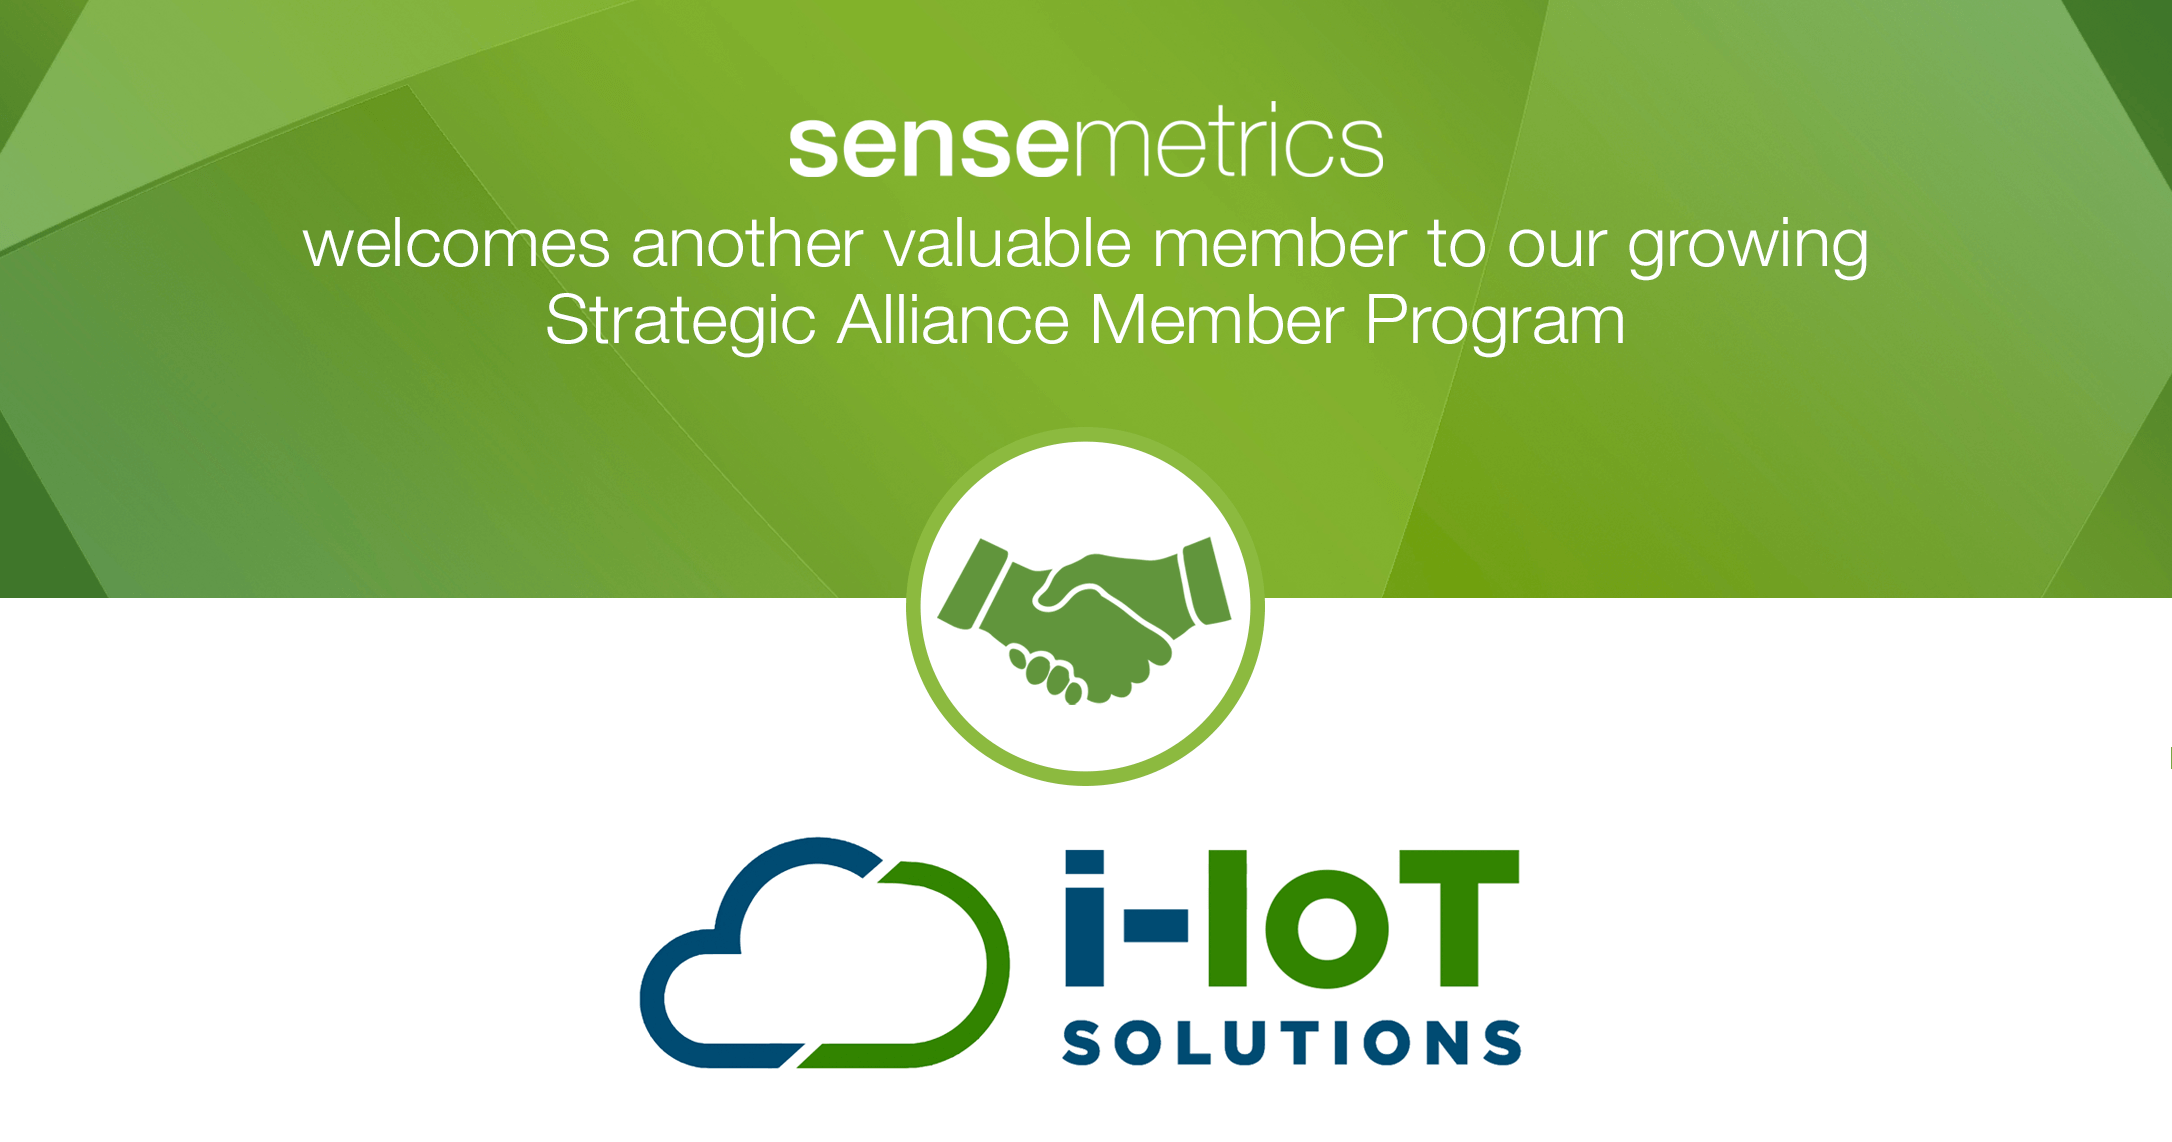 New sensemetrics Strategic Alliance Member!